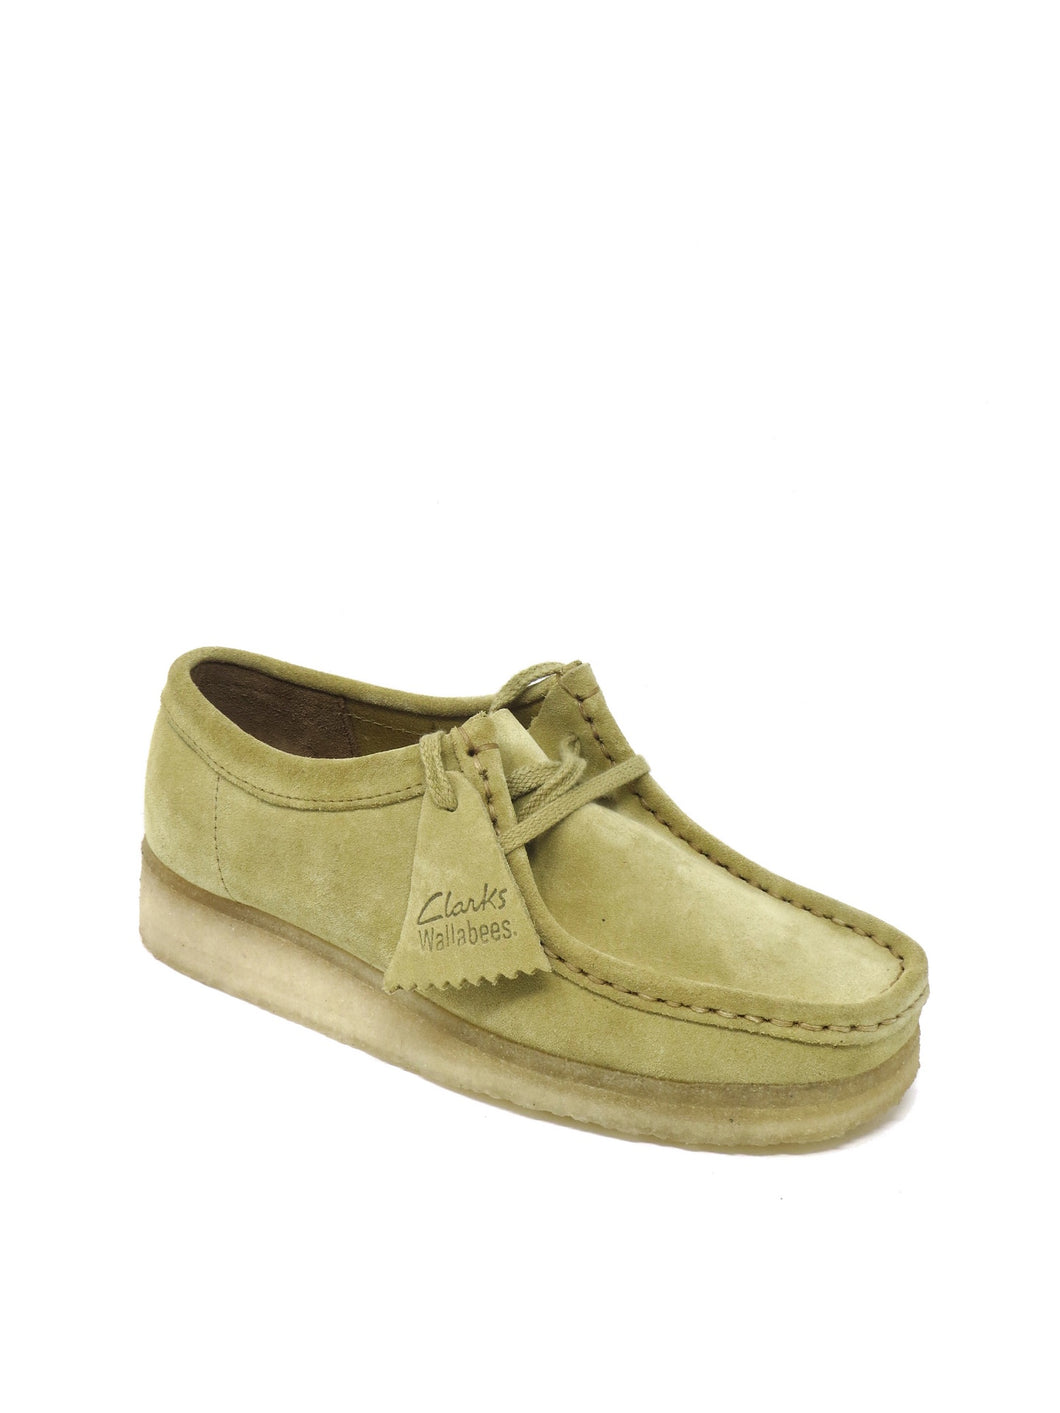 Clarks | 03674 | Wallabee | Maple Suede